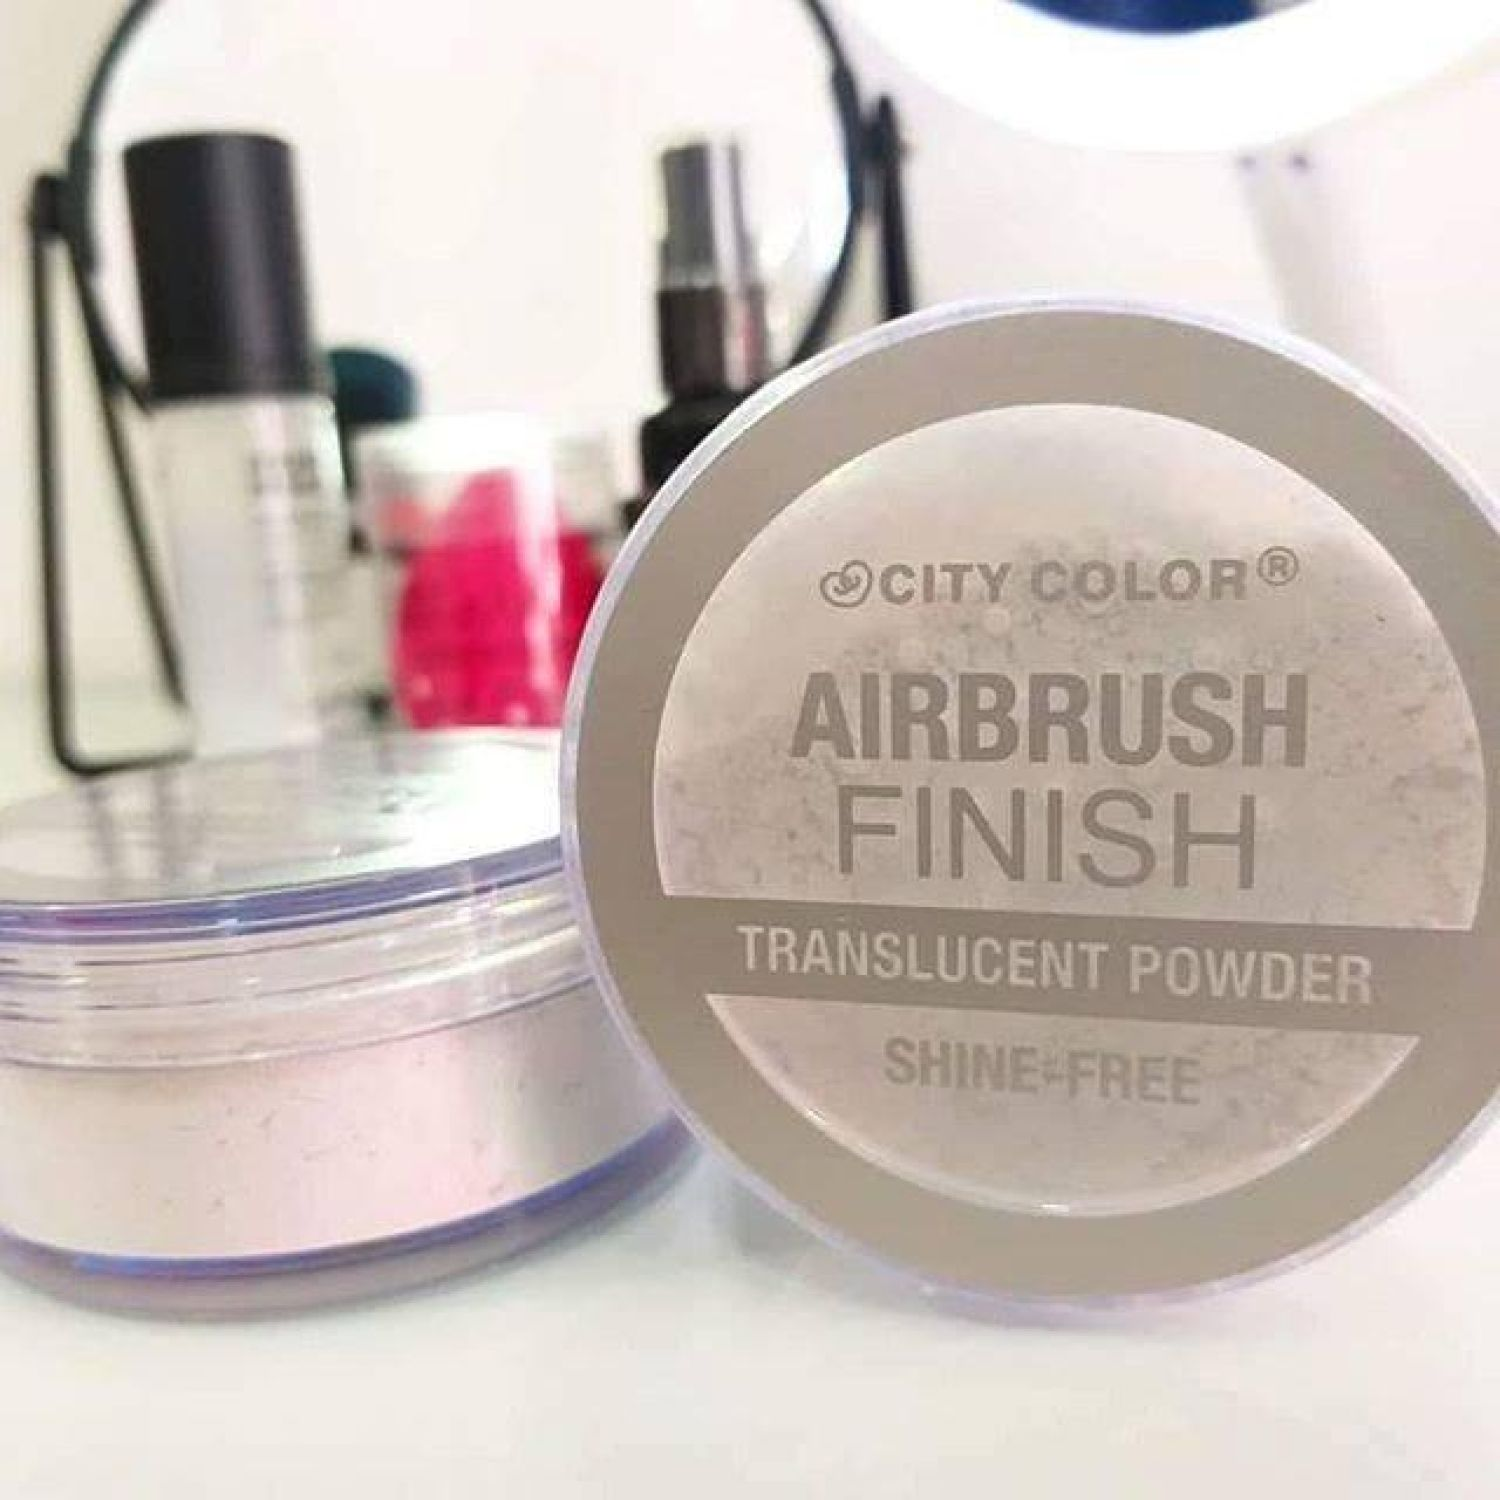 City Color Airbrush Powder Translucent Maquillaje en polvo